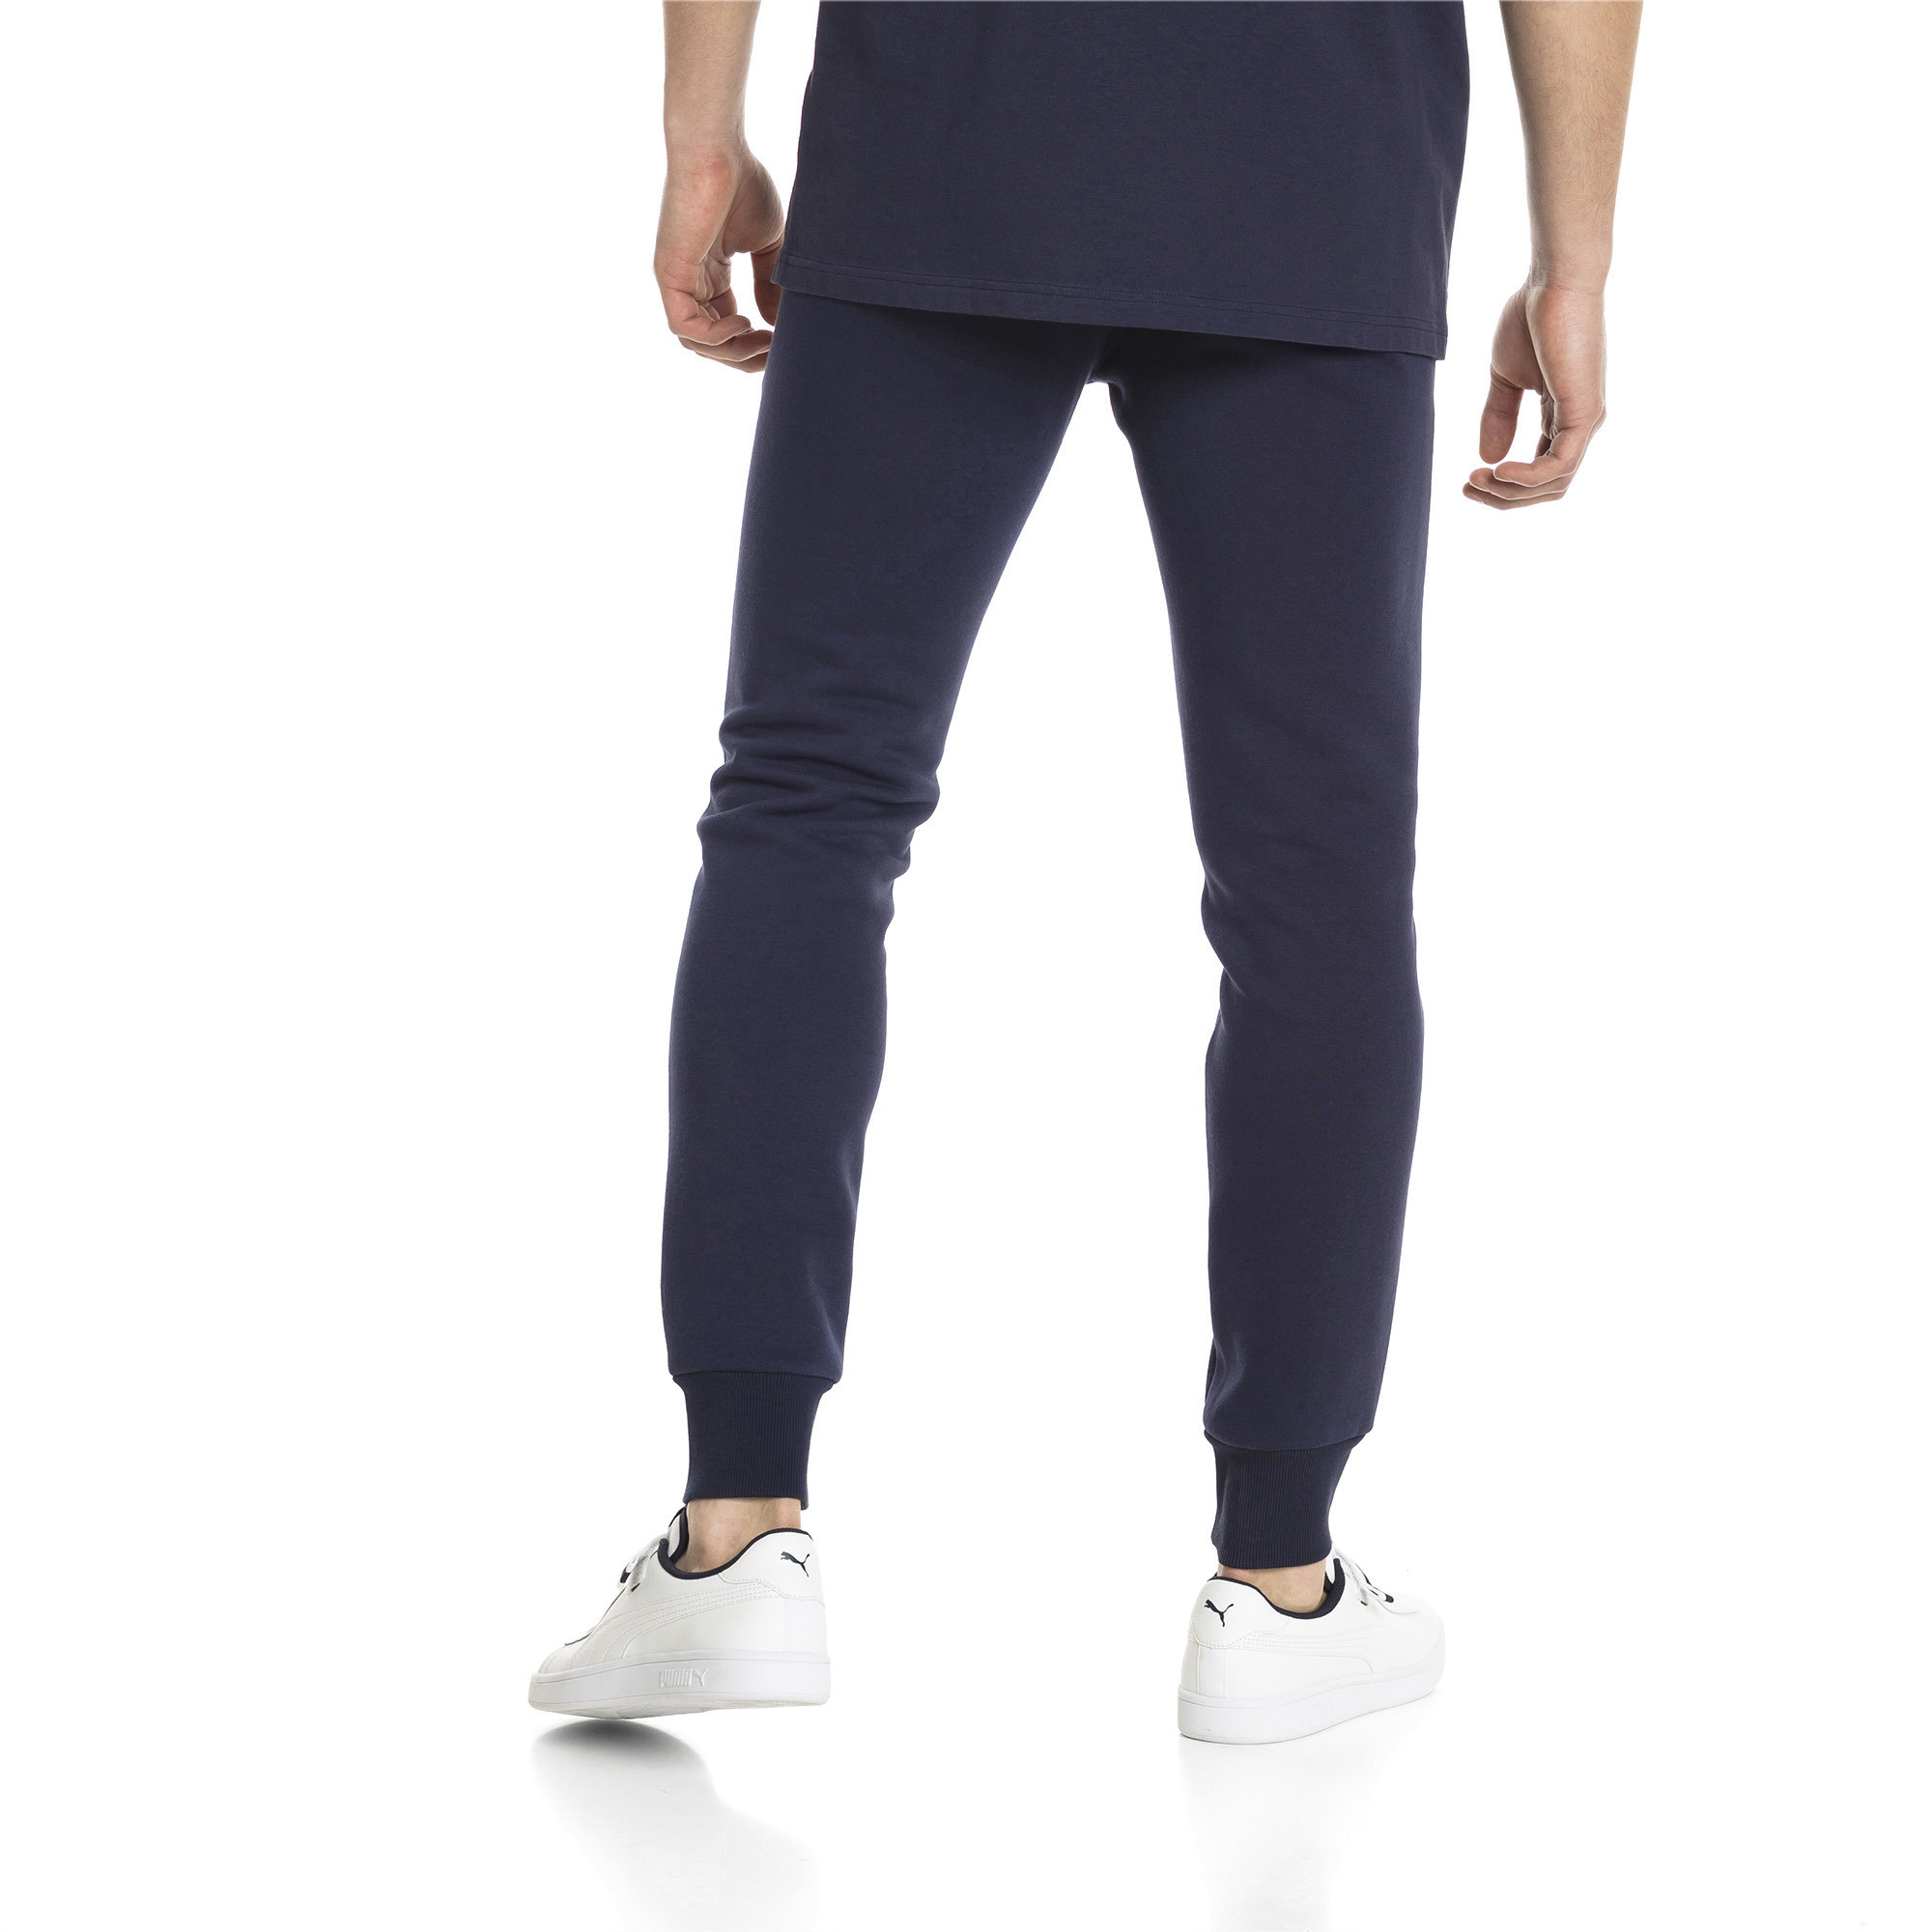 PUMA-Essentials-Men-039-s-Fleece-Knit-Pants-Men-Knitted-Pants-Basics thumbnail 7